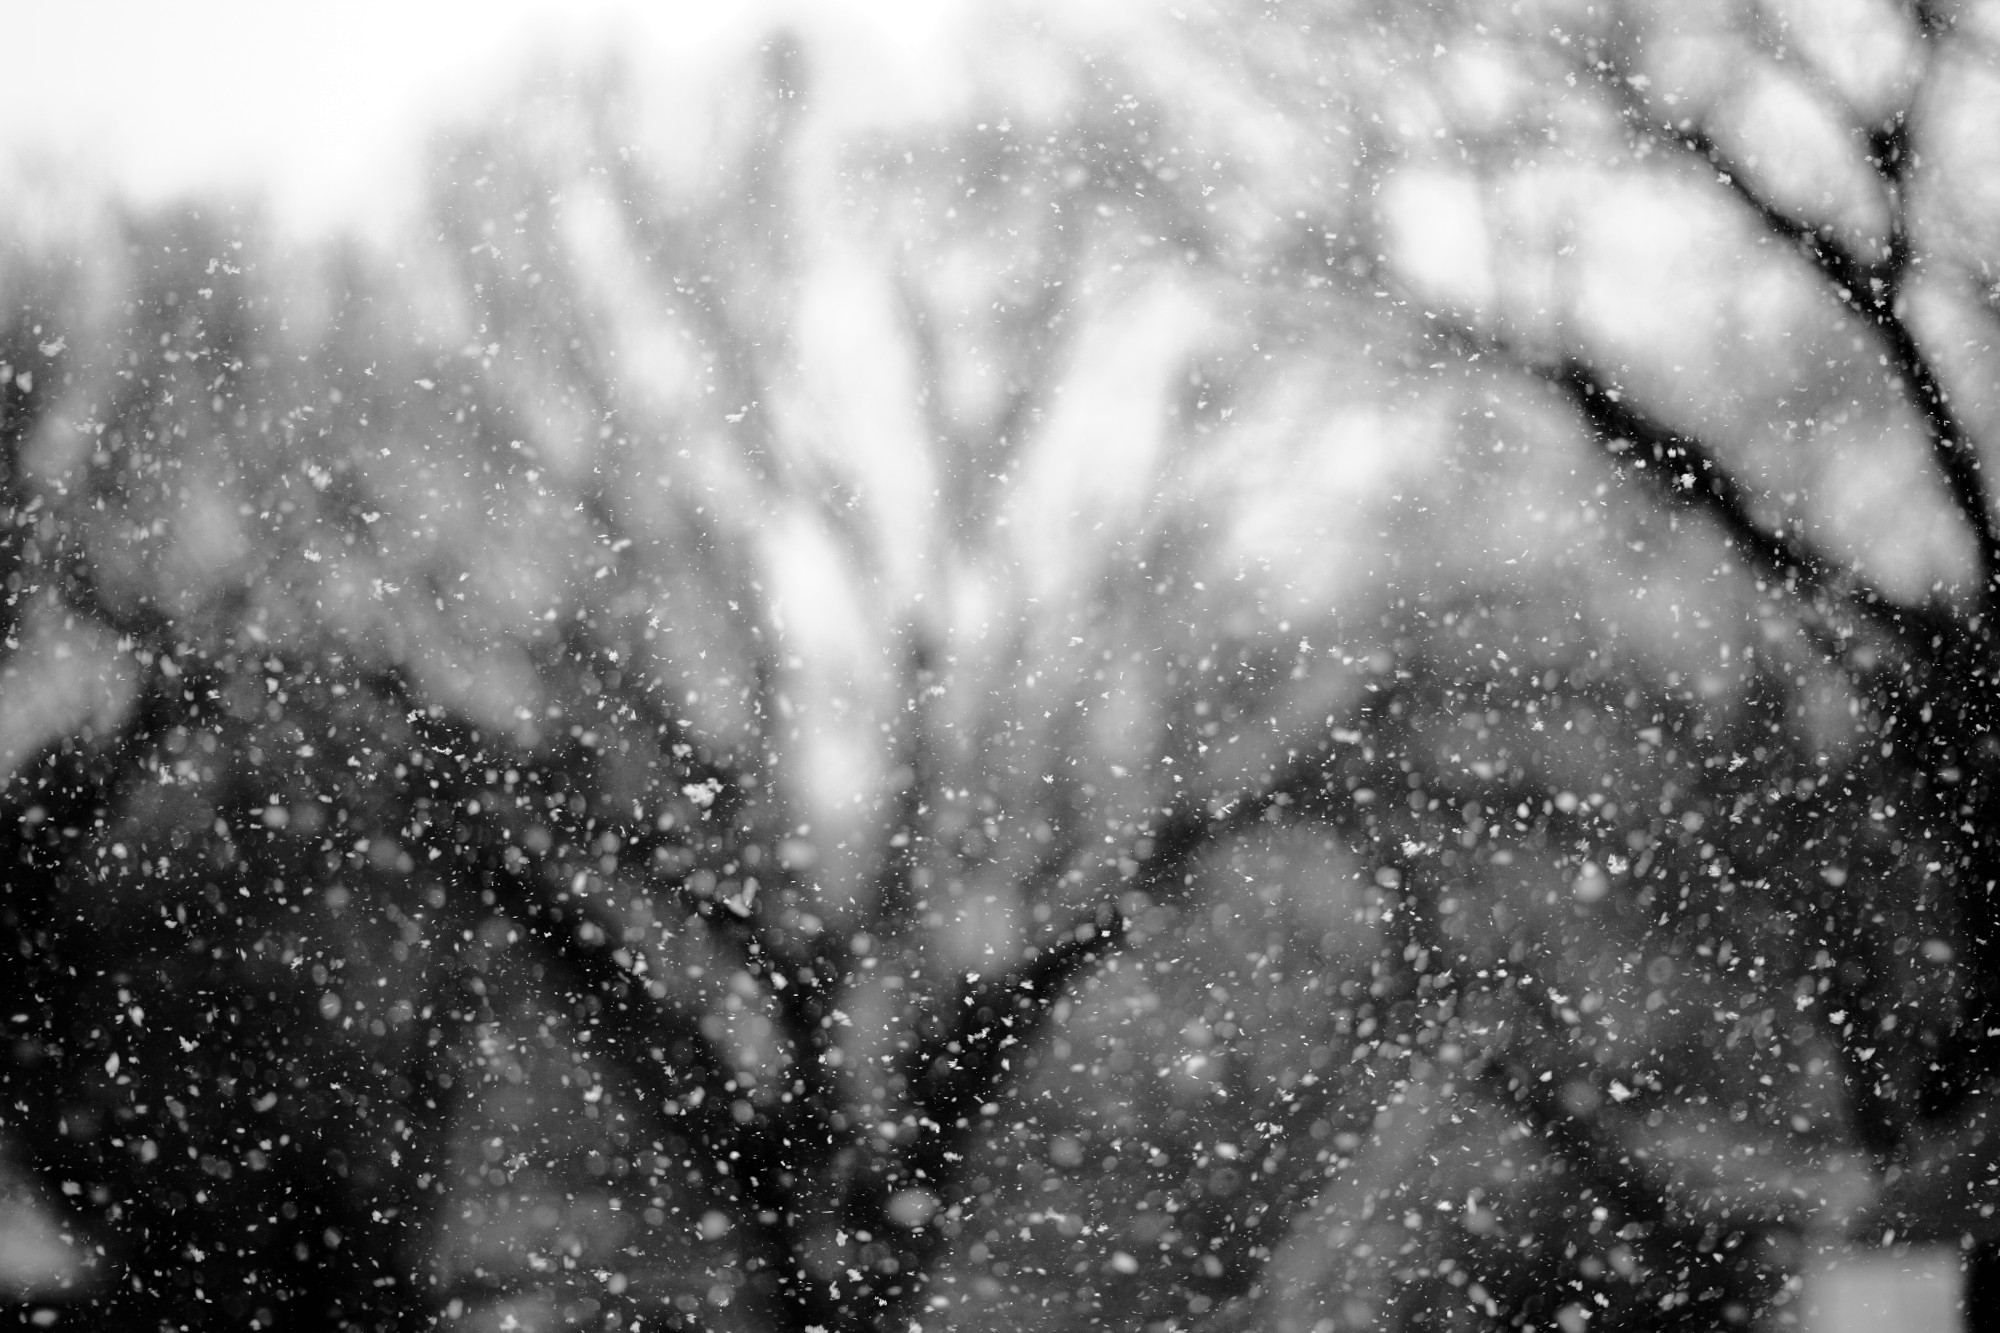 Snowflakes against the trees